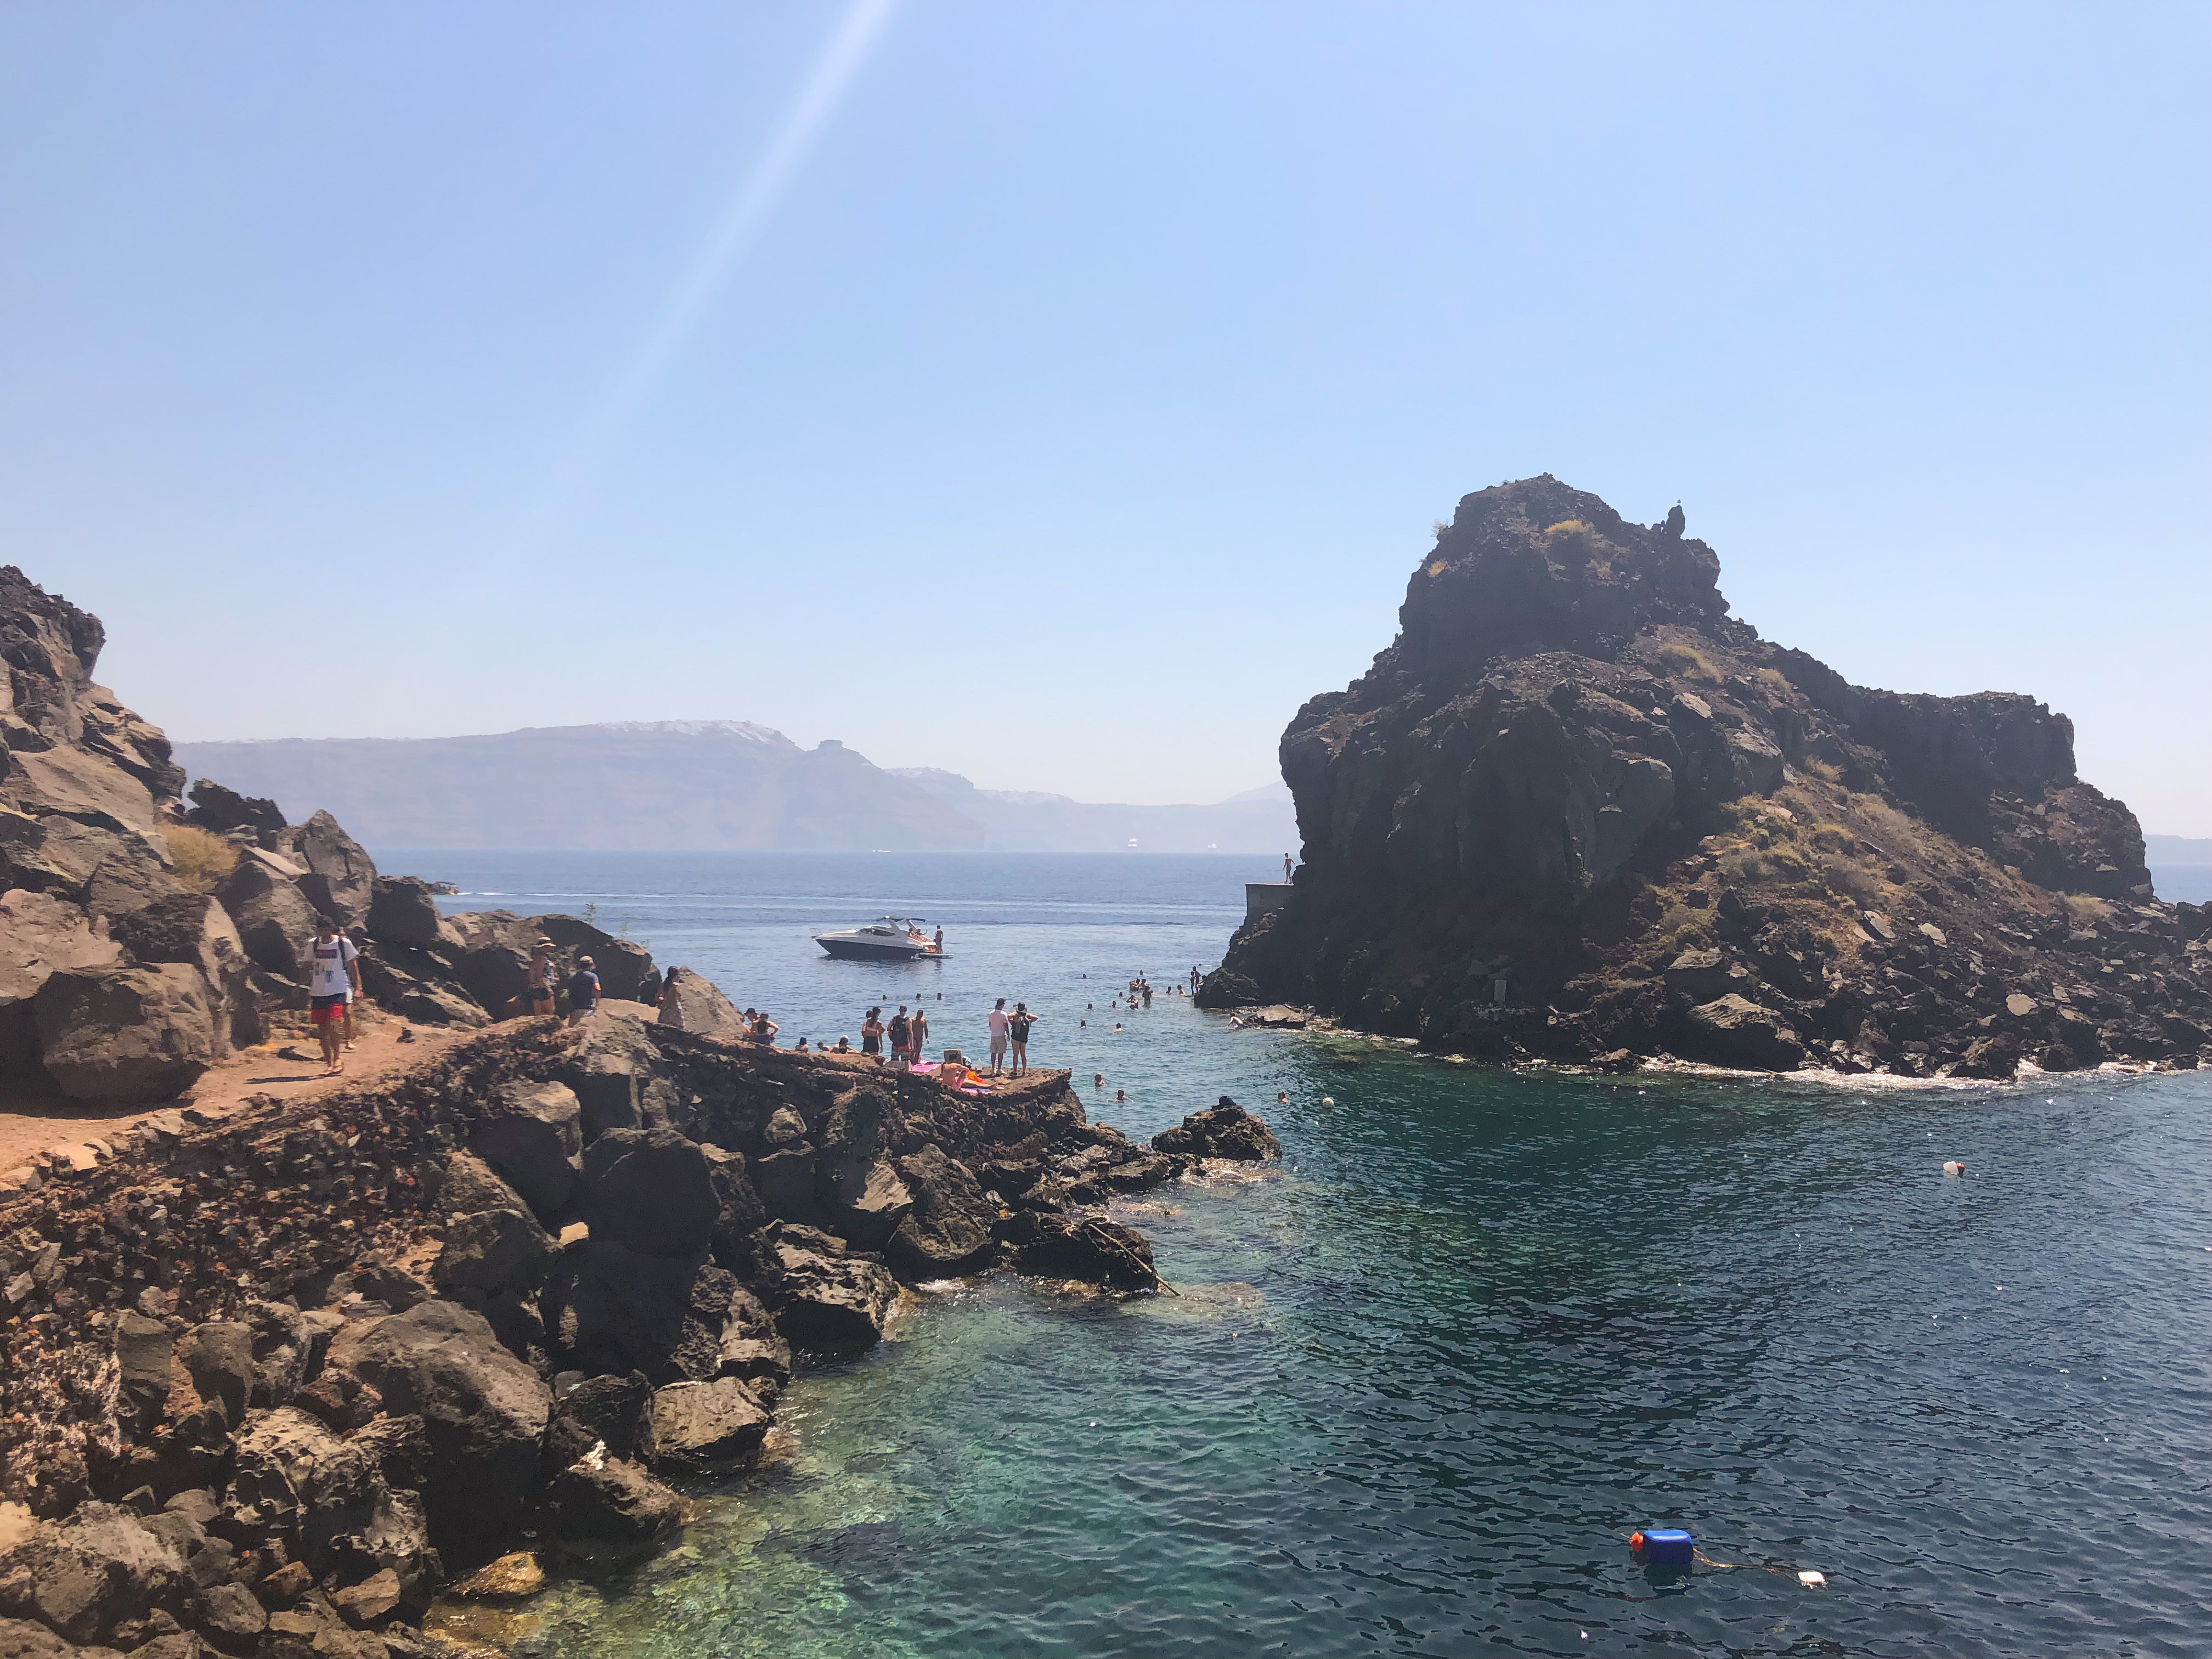 Swimming location at Amoudi Bay, Santorini.